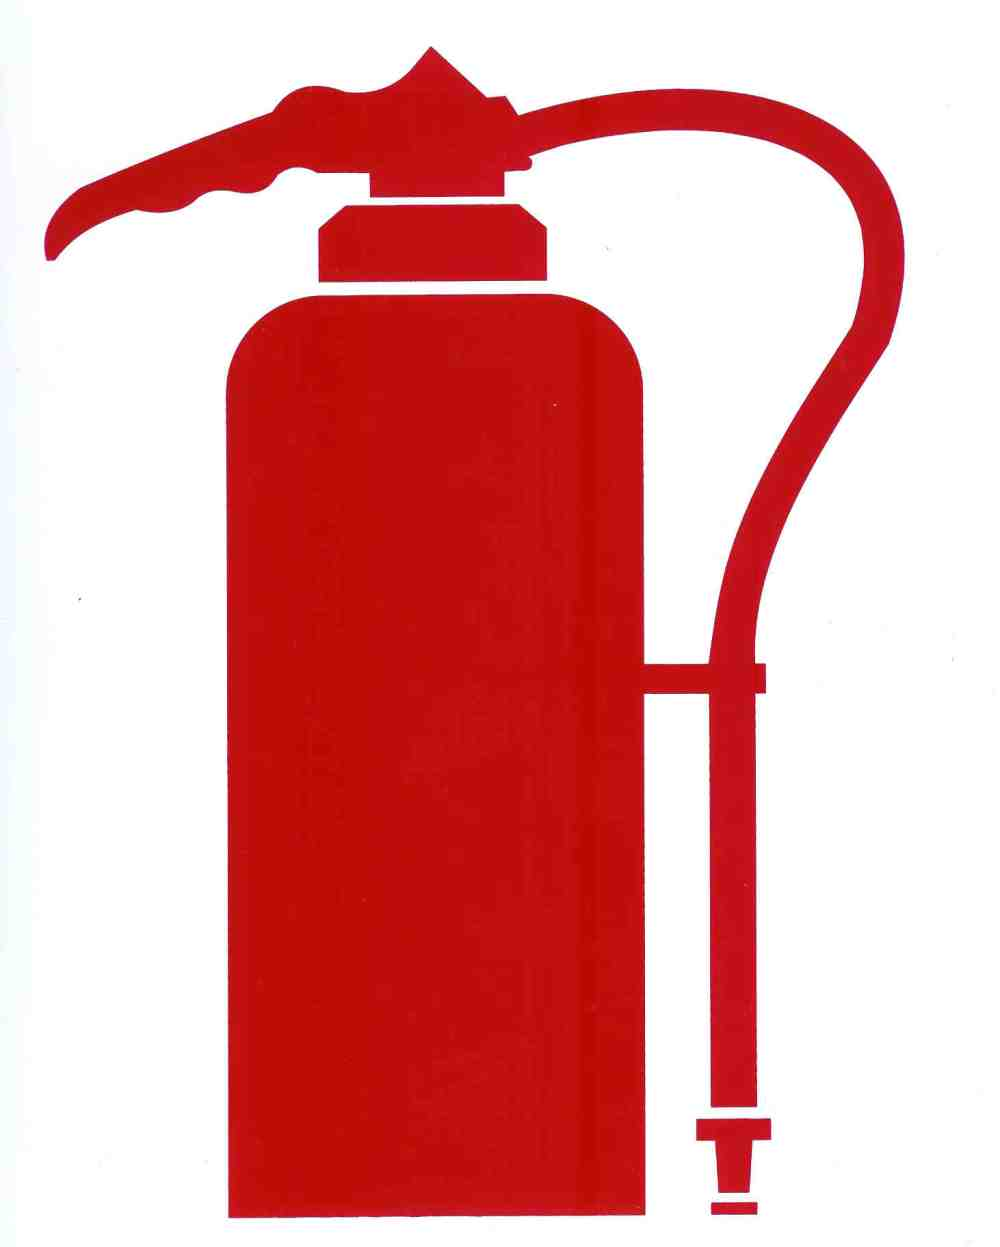 medium resolution of free fire extinguisher images clipart